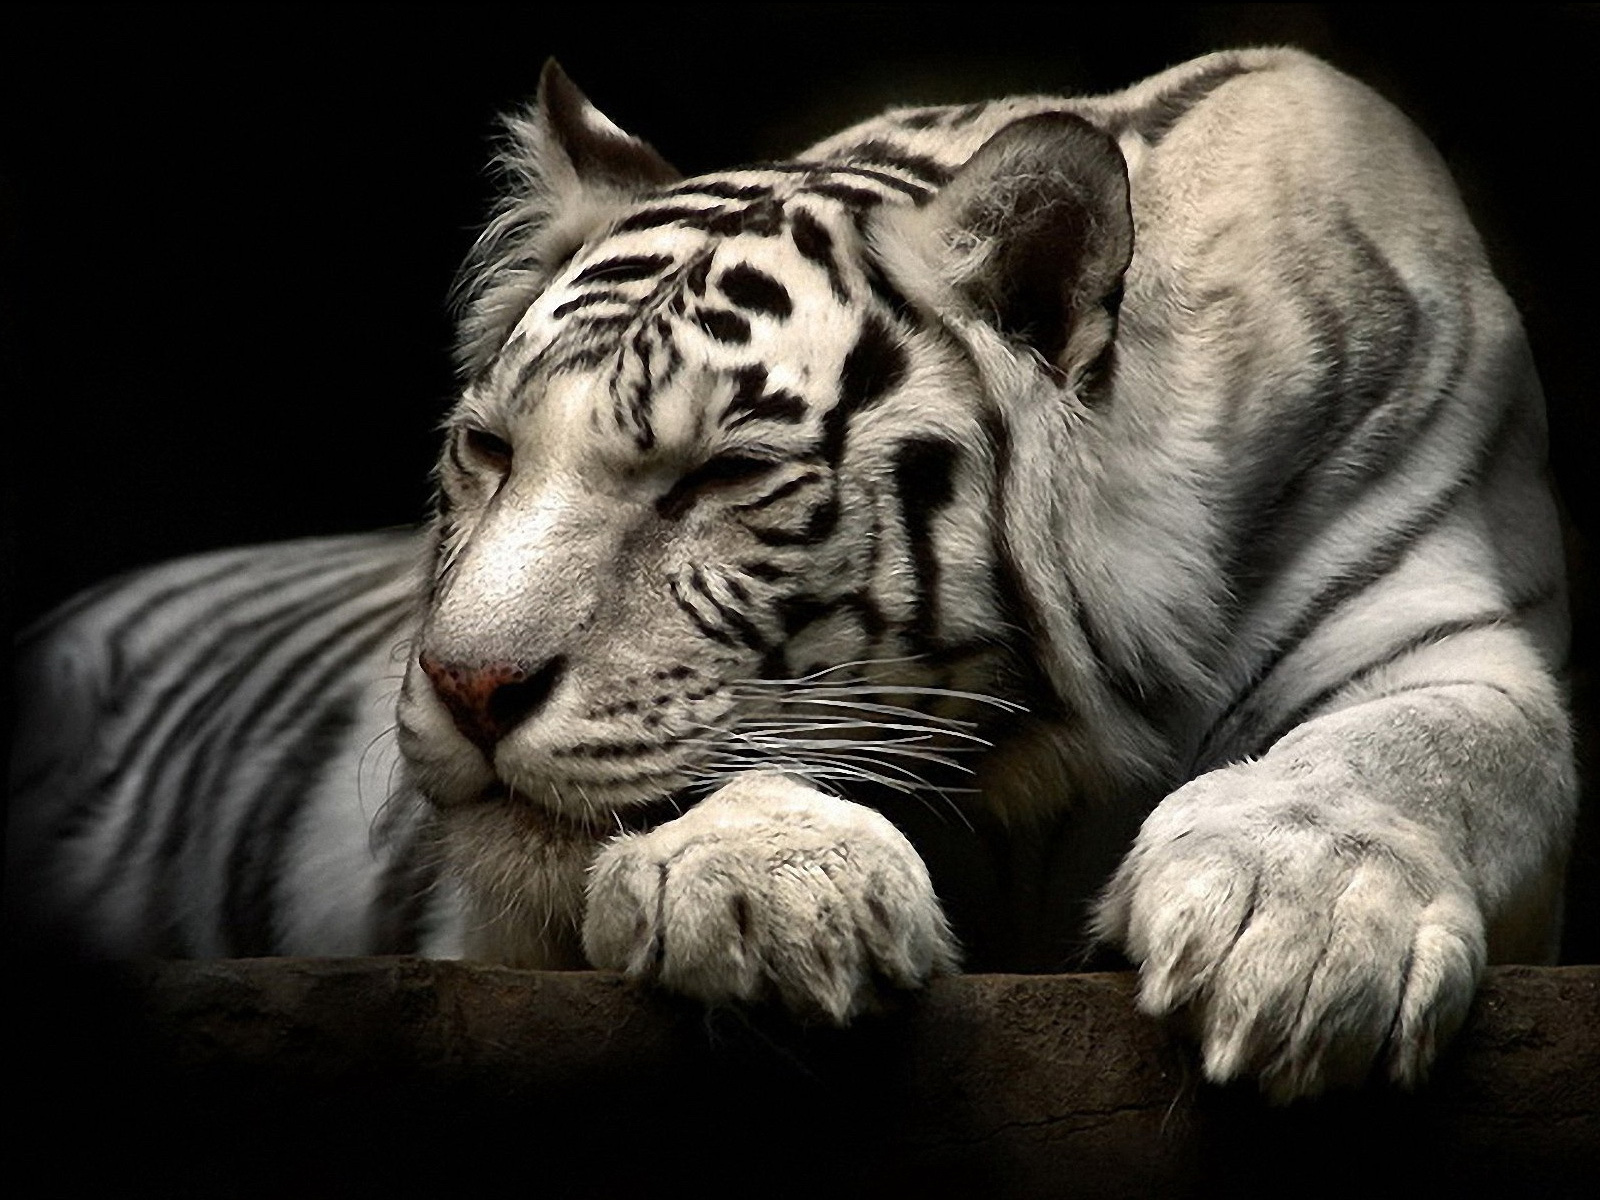 Dierenrijk - White Tiger  Dierenrijk Slick Photo Fur Stripes Tijger Paws Whiskers Proud Cool Kat Big Cat Beast Powerful Beautiful Predator Wit King Art Wallpaper